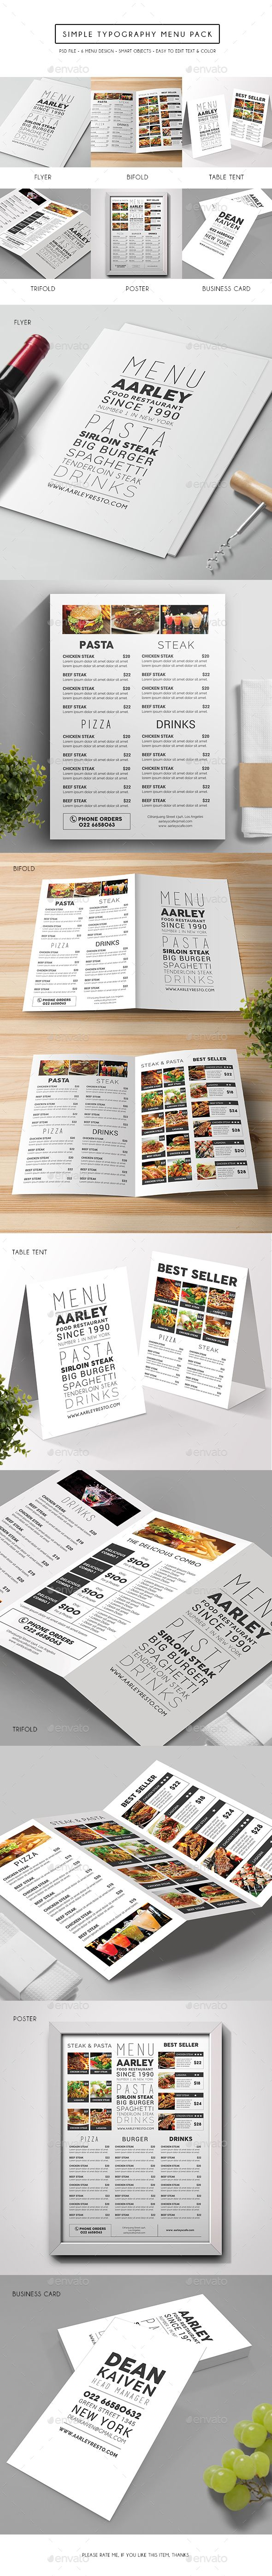 Simple Typography Menu Pack Templates PSD. Download here: http://graphicriver.net/item/simple-typography-menu-pack/15103580?ref=ksioks